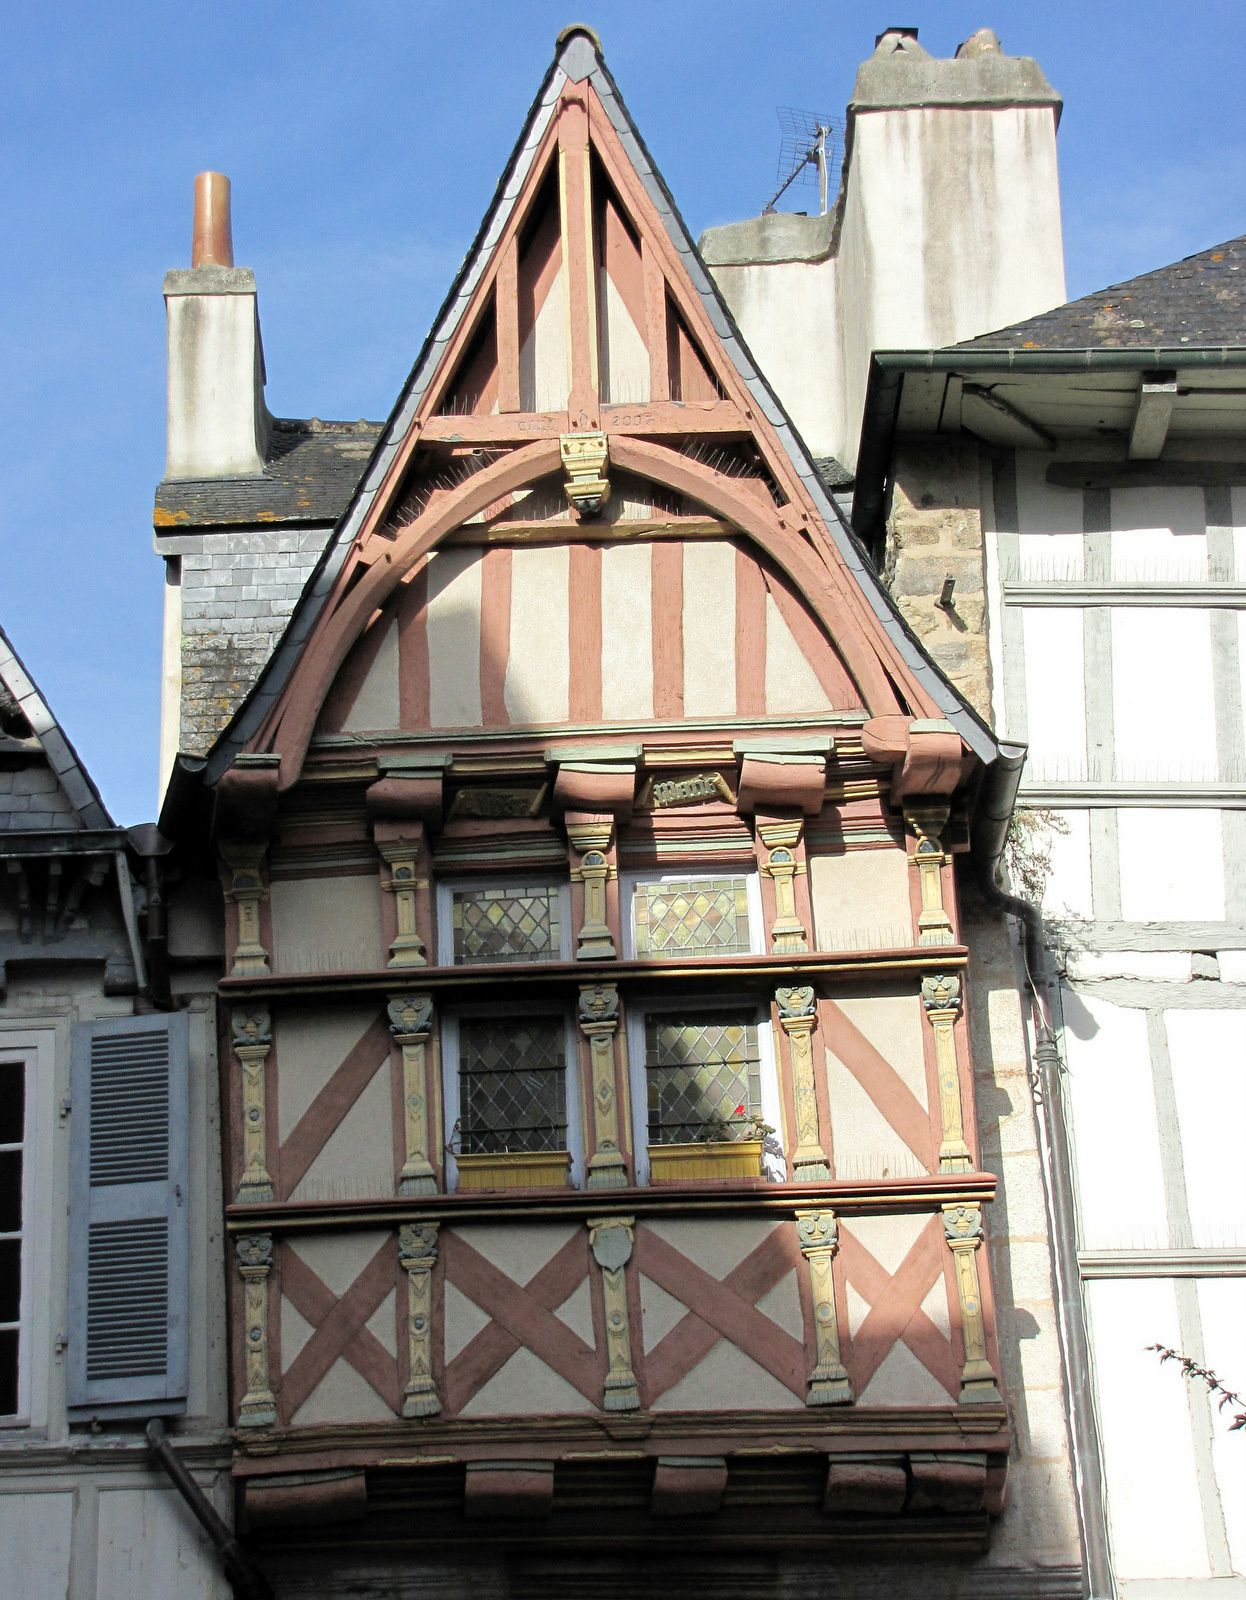 Maisons encorbellements quimper finist re le blog - Maison de l avenir quimper ...